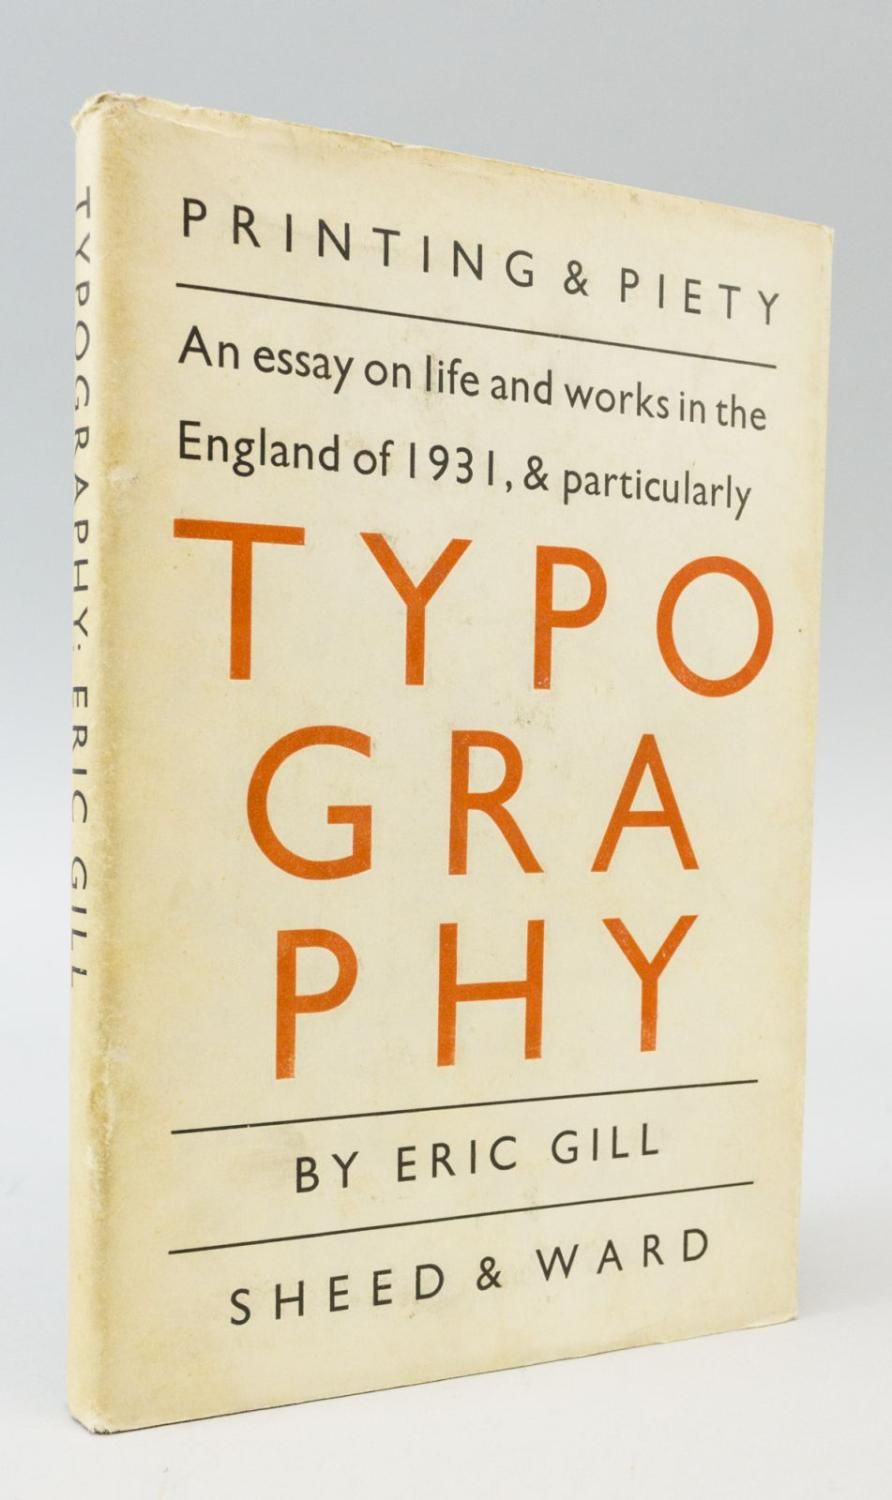 eric gill essay typography Eric gill (2016) an essay on typography, p43, laurus 35 copy quote art is skill, that is the first meaning of the word eric gill art, skills, firsts.